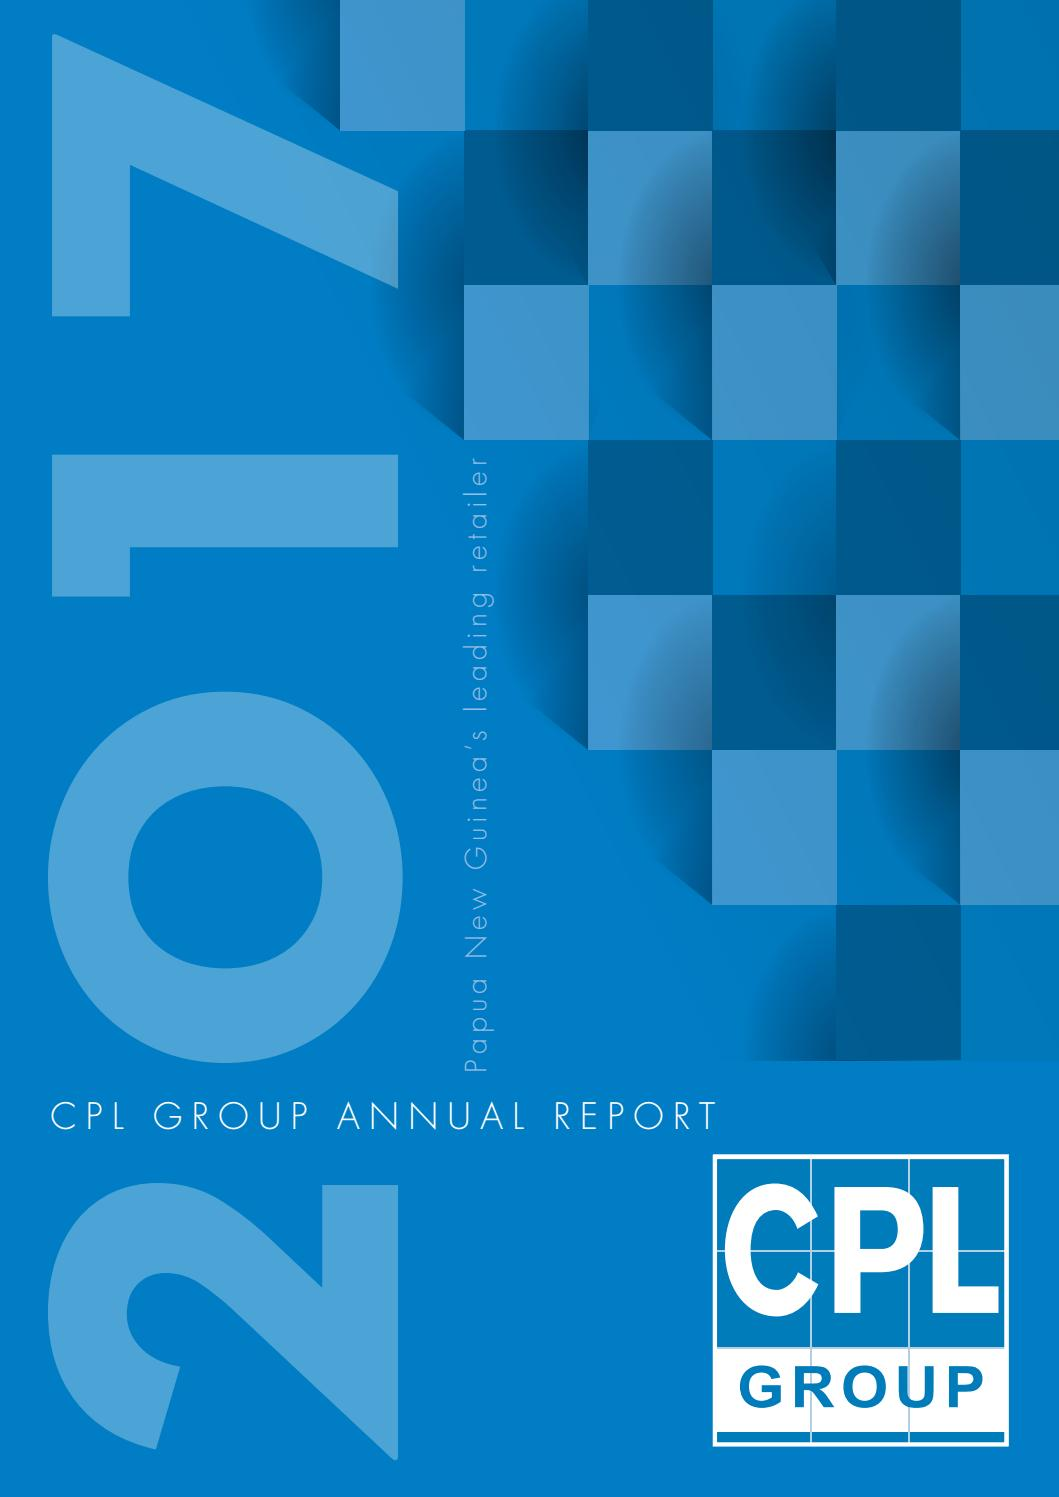 CPL Group Annual Report 2017 by Business Advantage International.